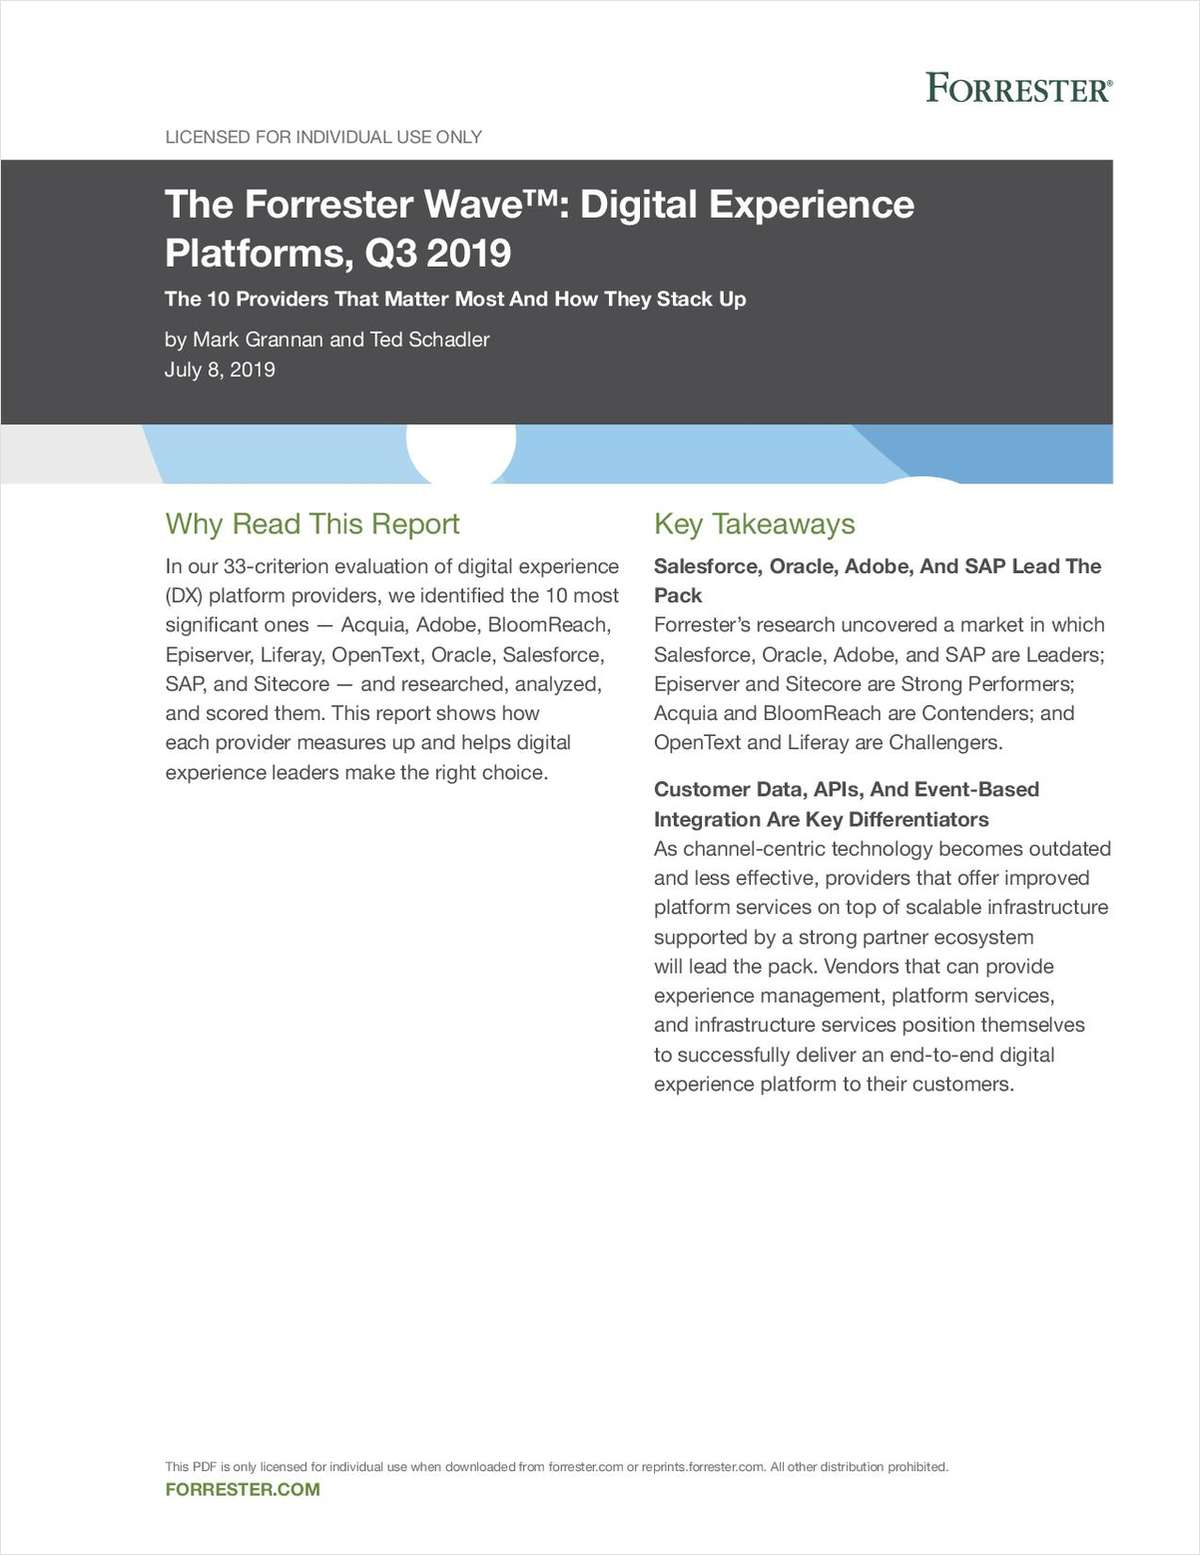 The Forrester Wave™: Digital Experience Platforms, Q3 2019